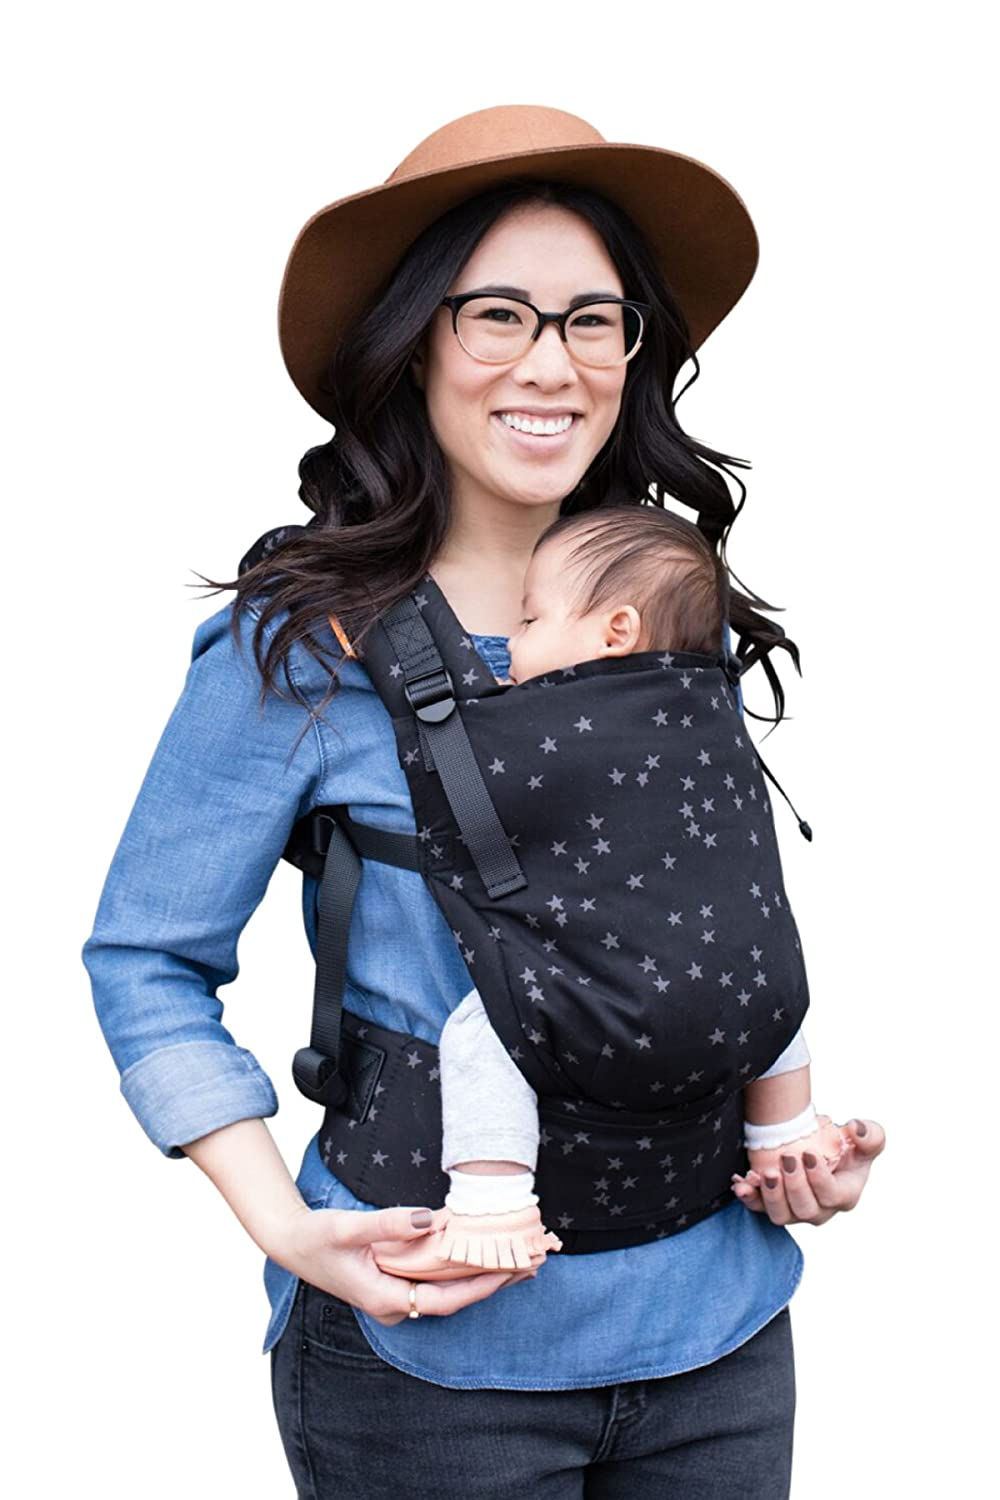 Baby Tula Free-to-Grow Baby Carrier, Adjustable Newborn to Toddler Carrier, Ergonomic and Multiple Positions for 7 – 45 pounds – Urbanista (Black)